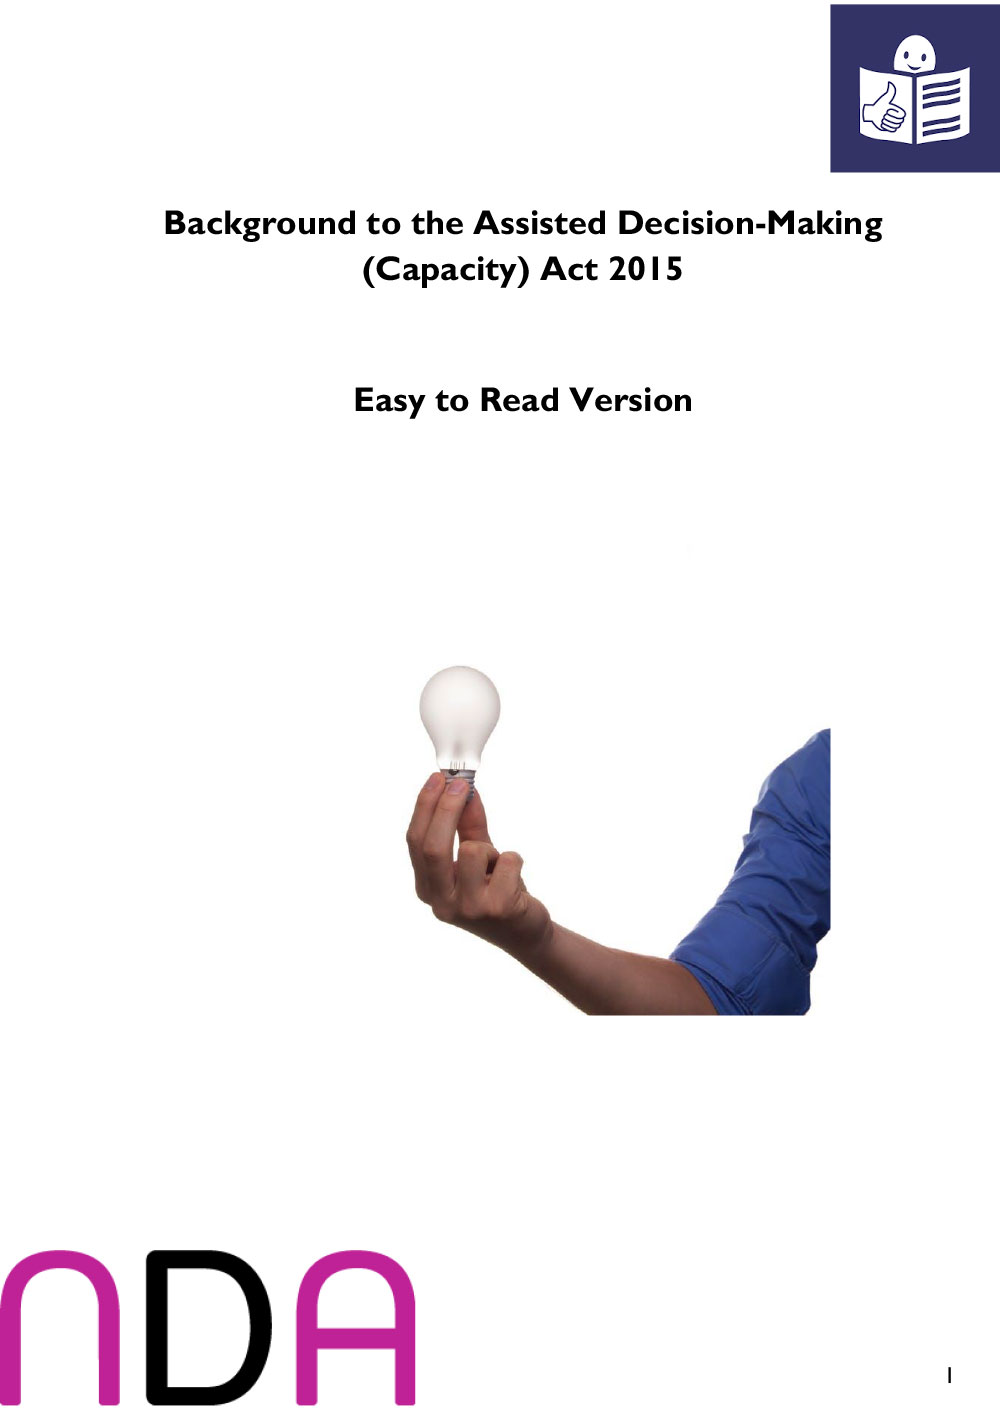 Background to the Assisted Decision-Making (Capacity) Act 2015